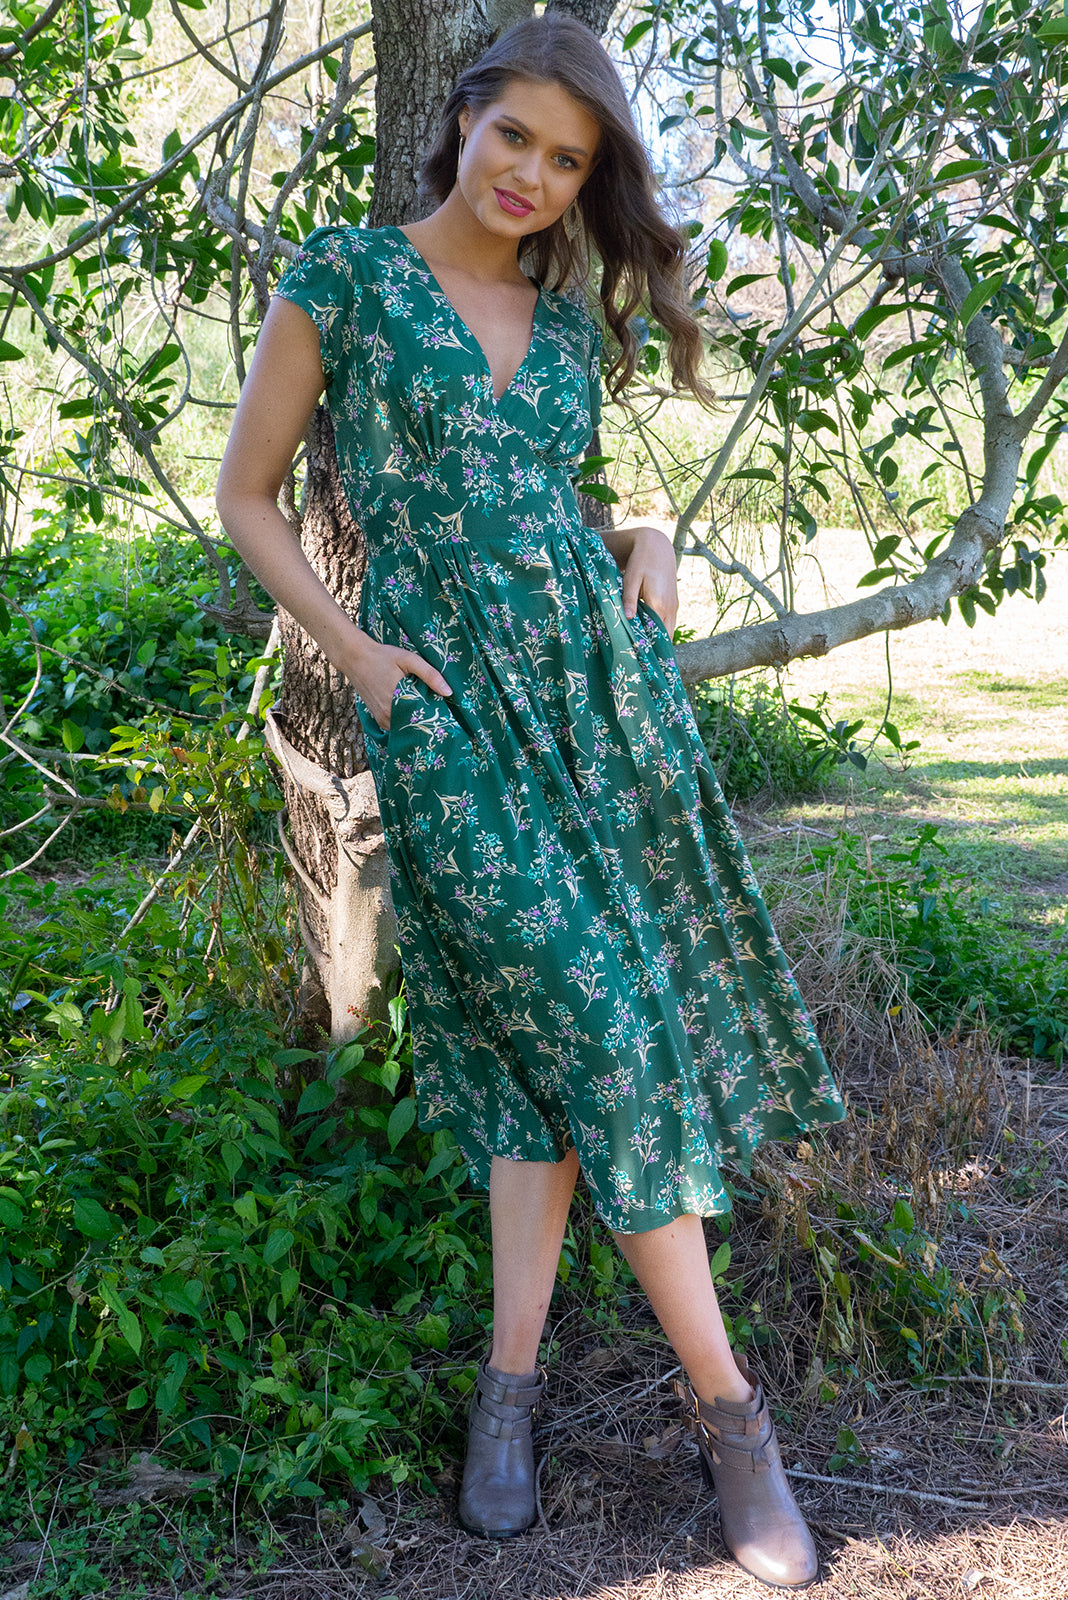 Lizzie Green Spring Midi dress features a vintage inspired fitted basque waist and elasticated waist with a cap sleeve and deep v neck the fabric is a soft woven rayon in a bright green floral print